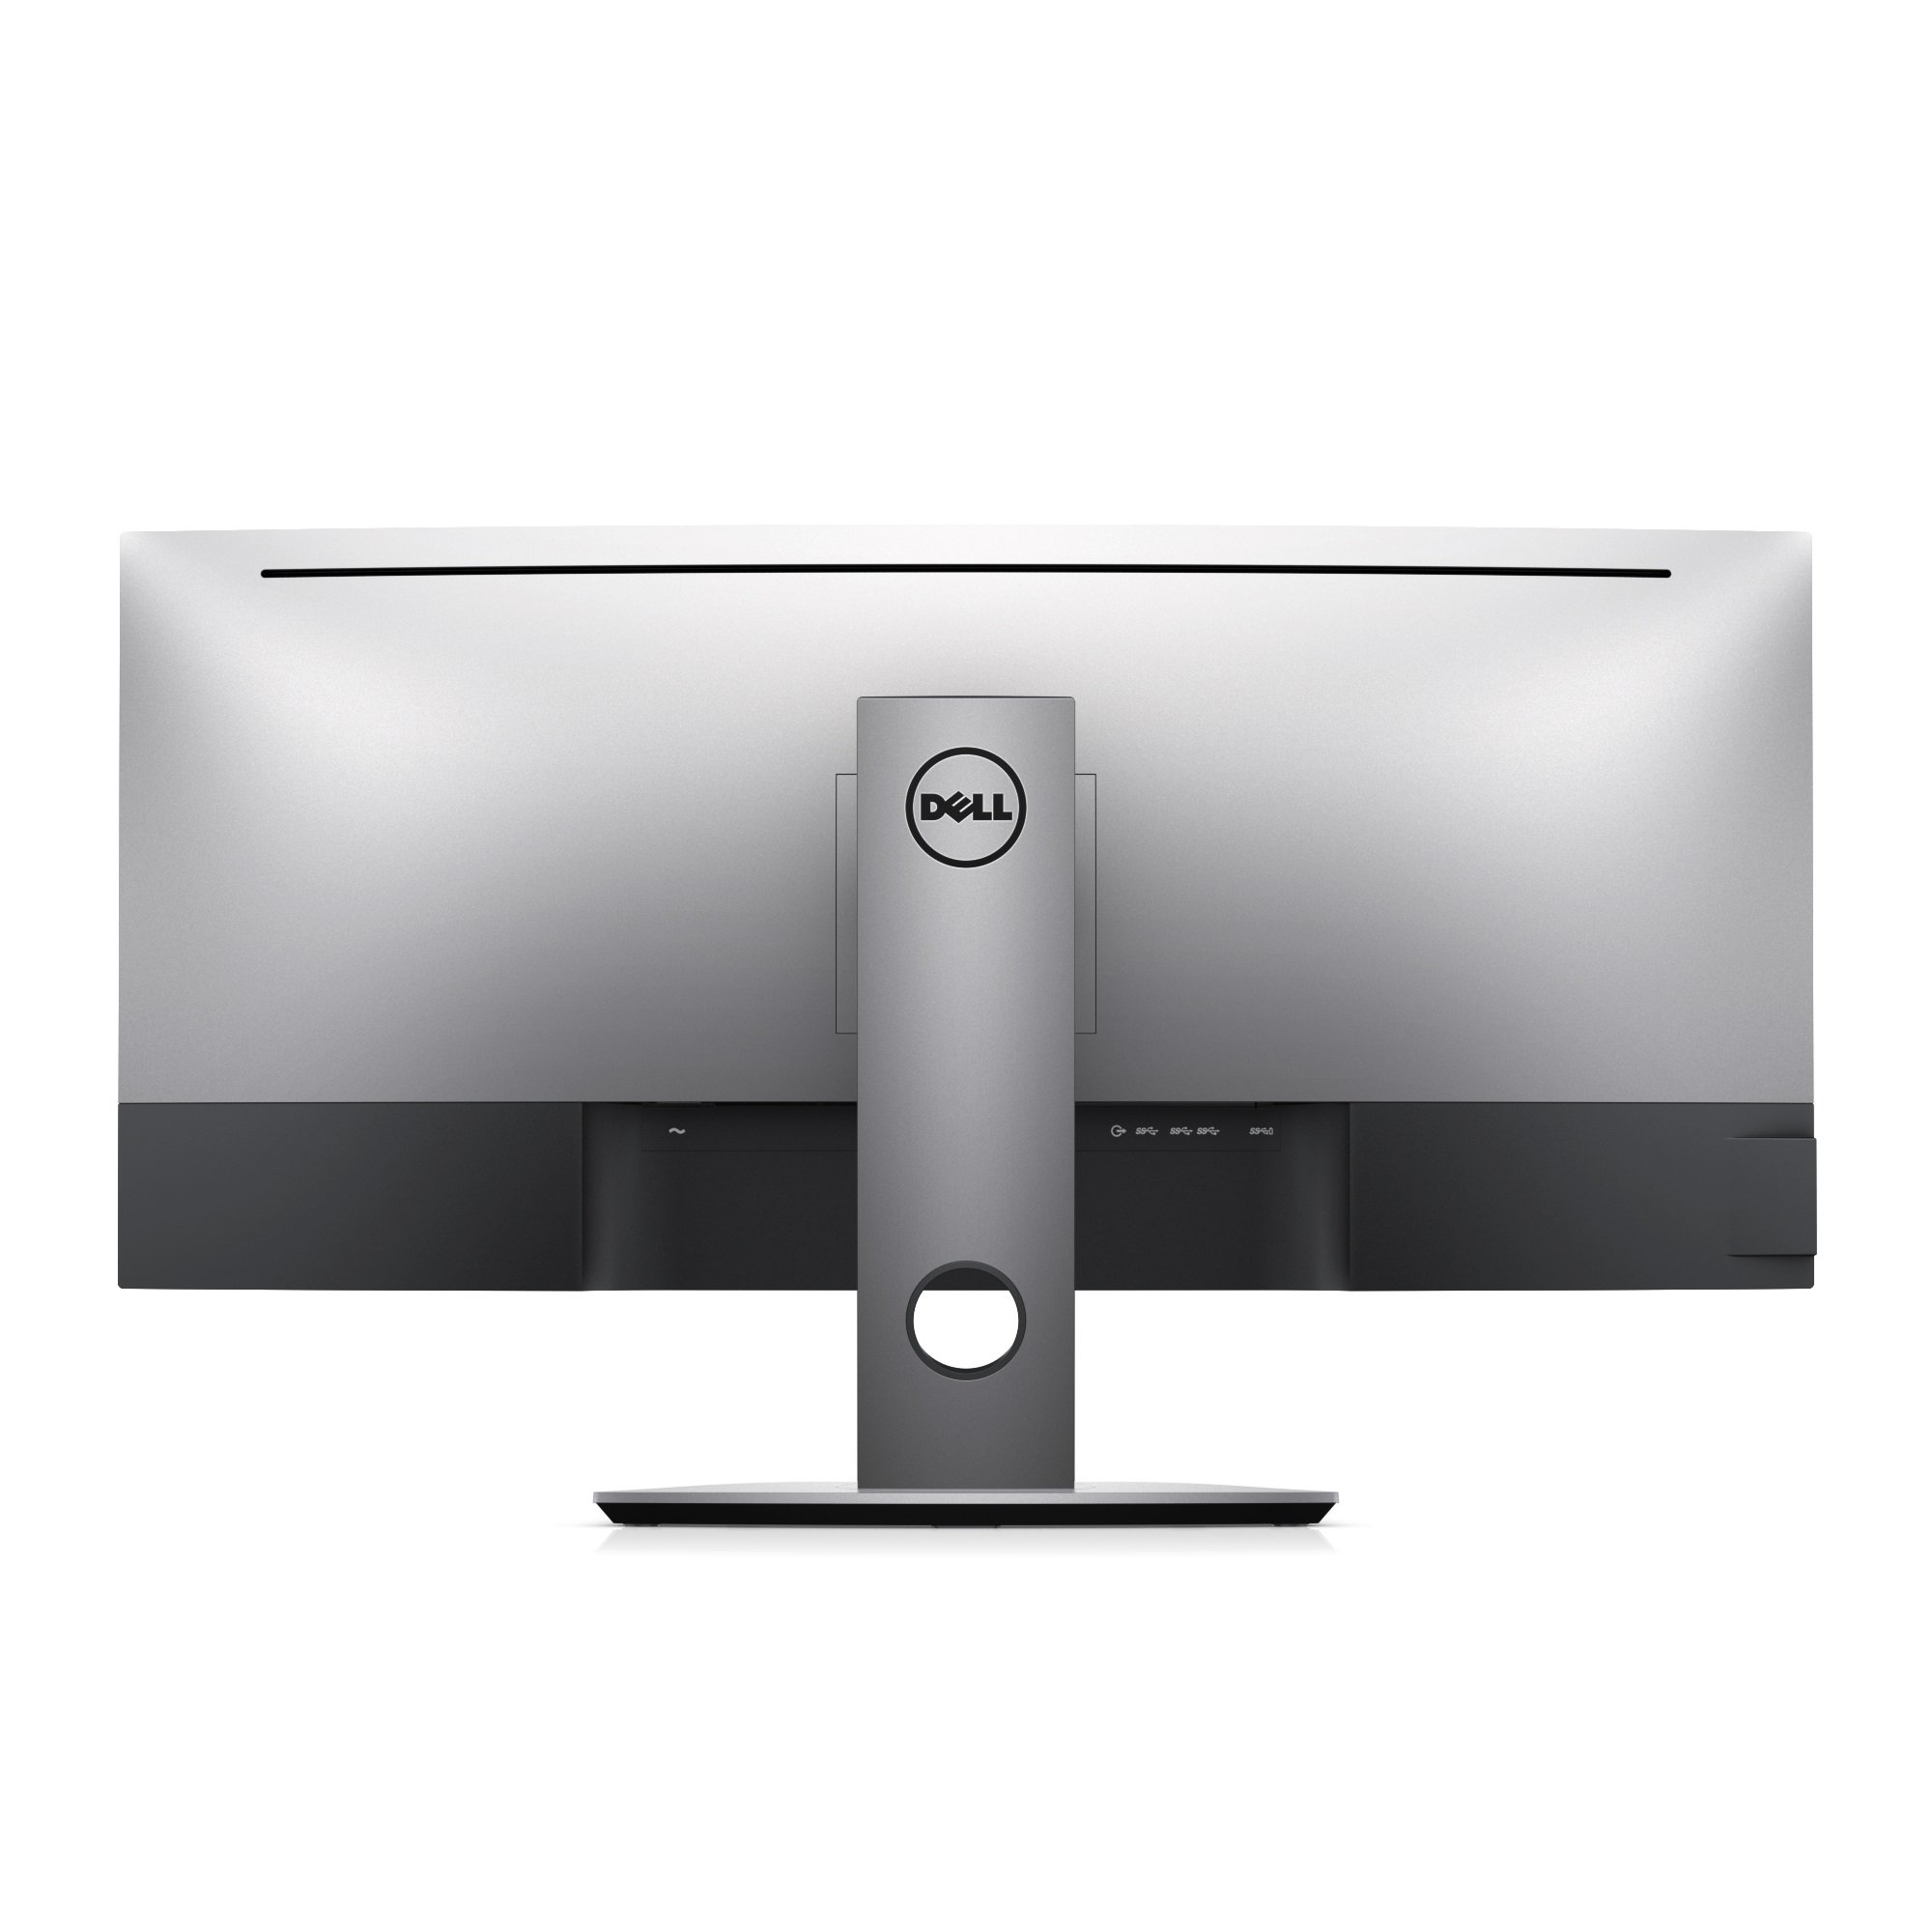 Dell U3417W FR3PK 34-Inch Screen Led-Lit Monitor by Dell (Image #7)